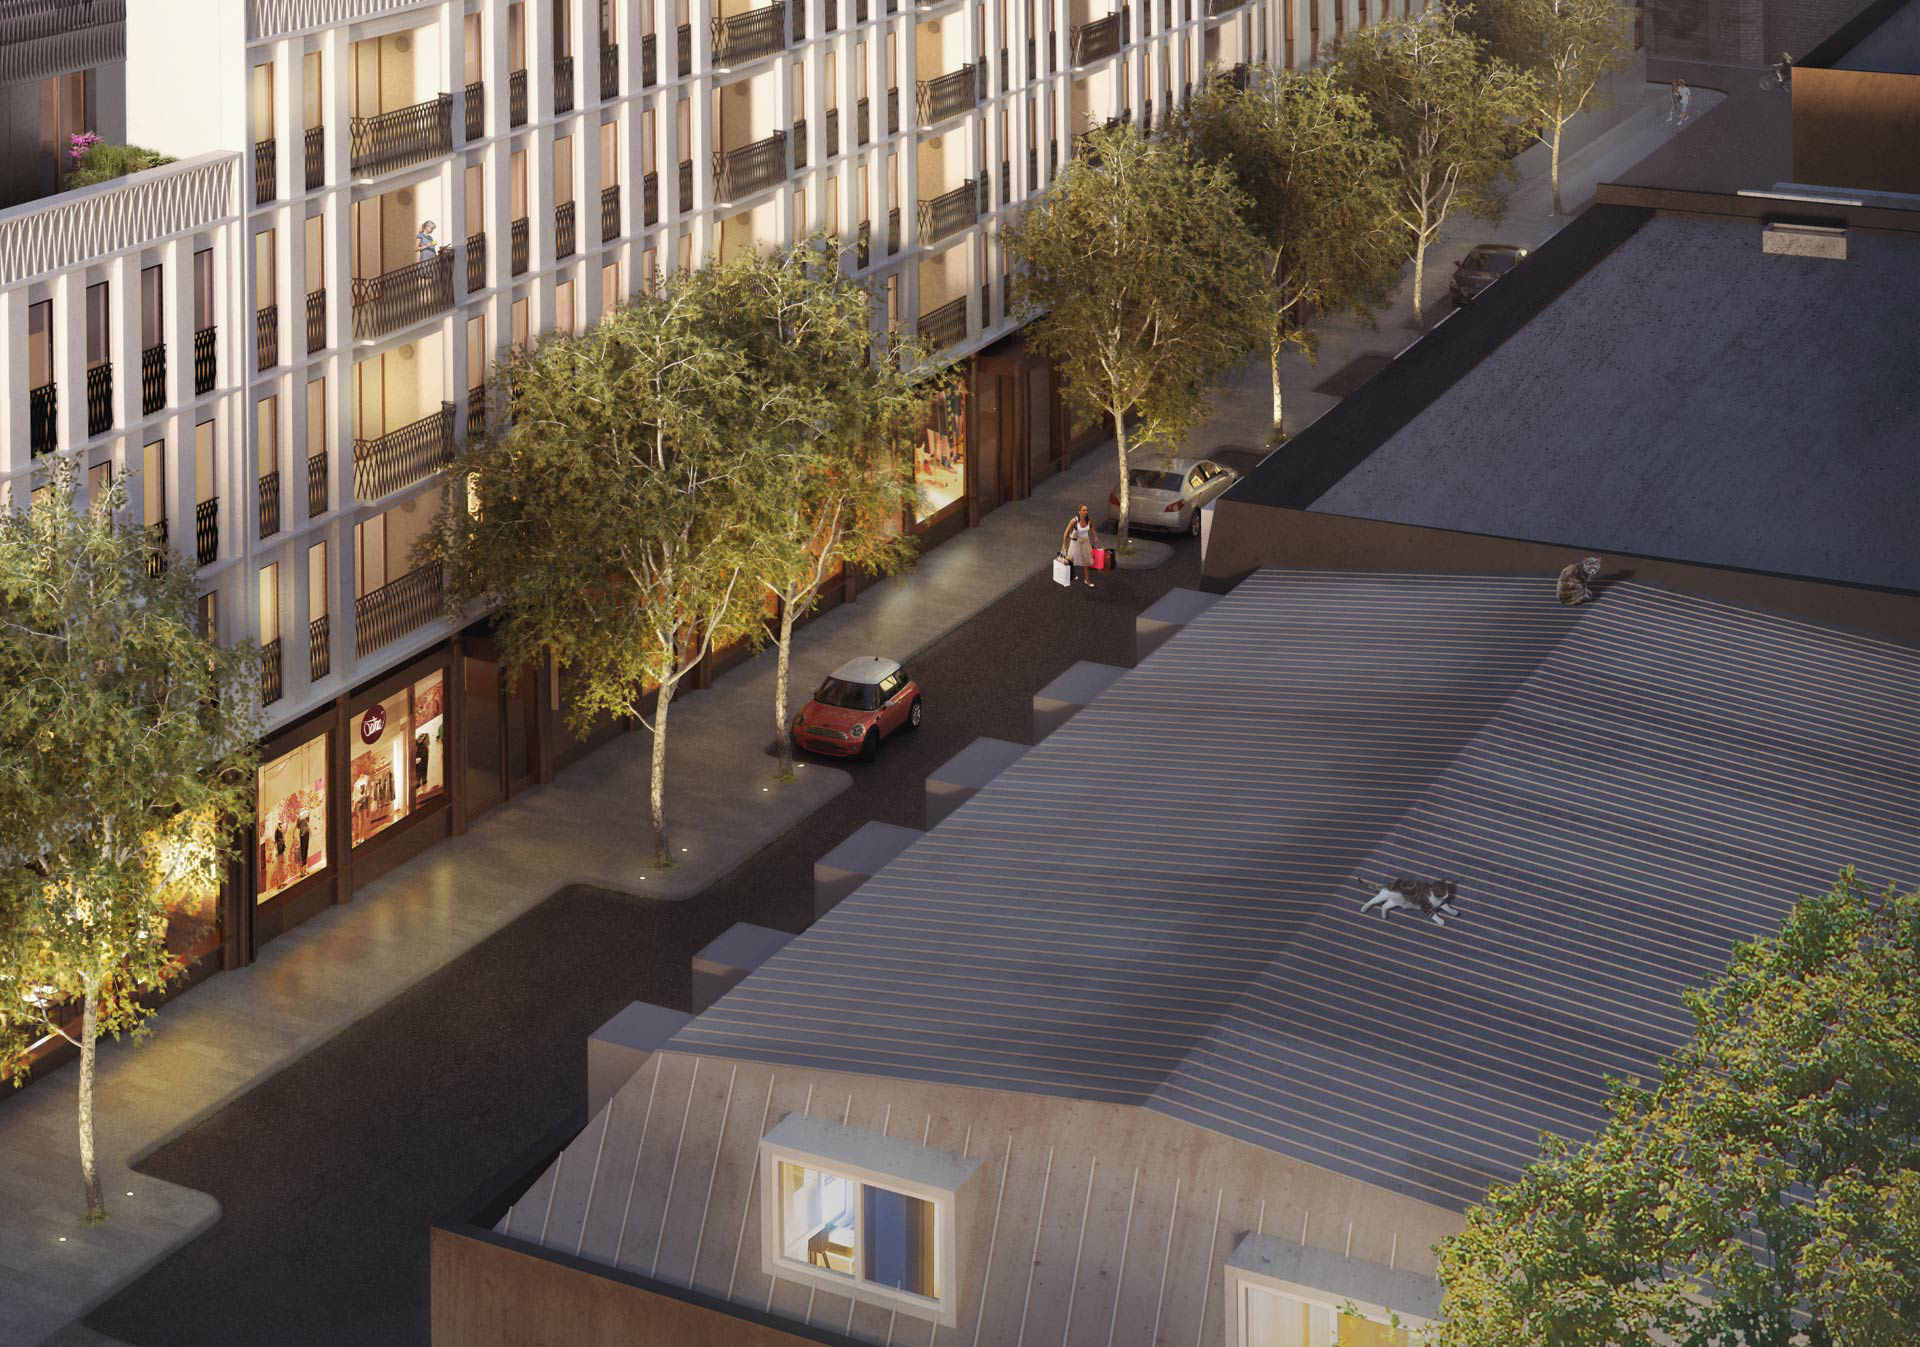 3d visualization of a new development on Moxon street in London - crop on the roof